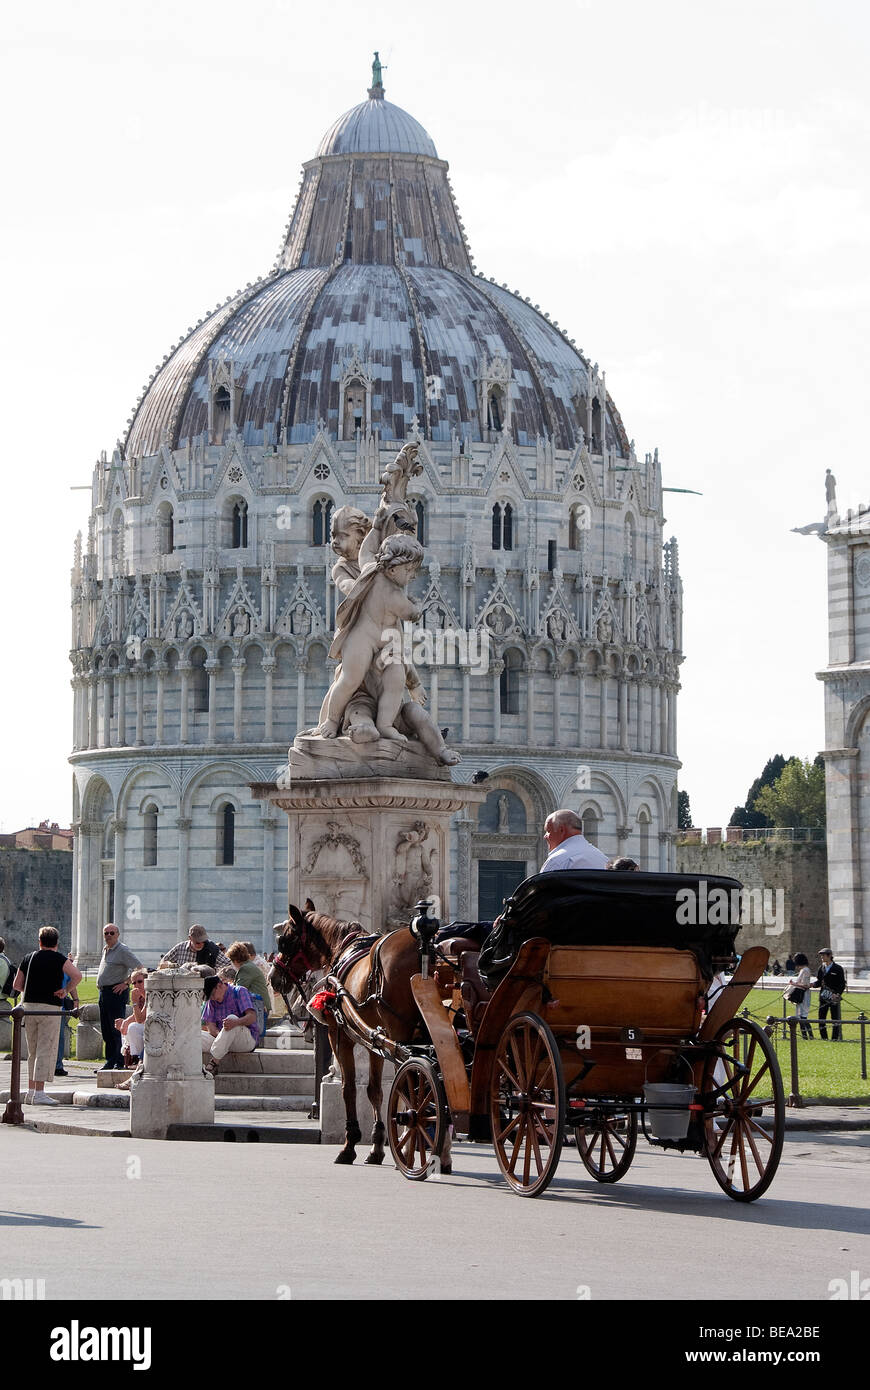 A horse and carriage outside the Baptistery near the Leaning Tower - Stock Image